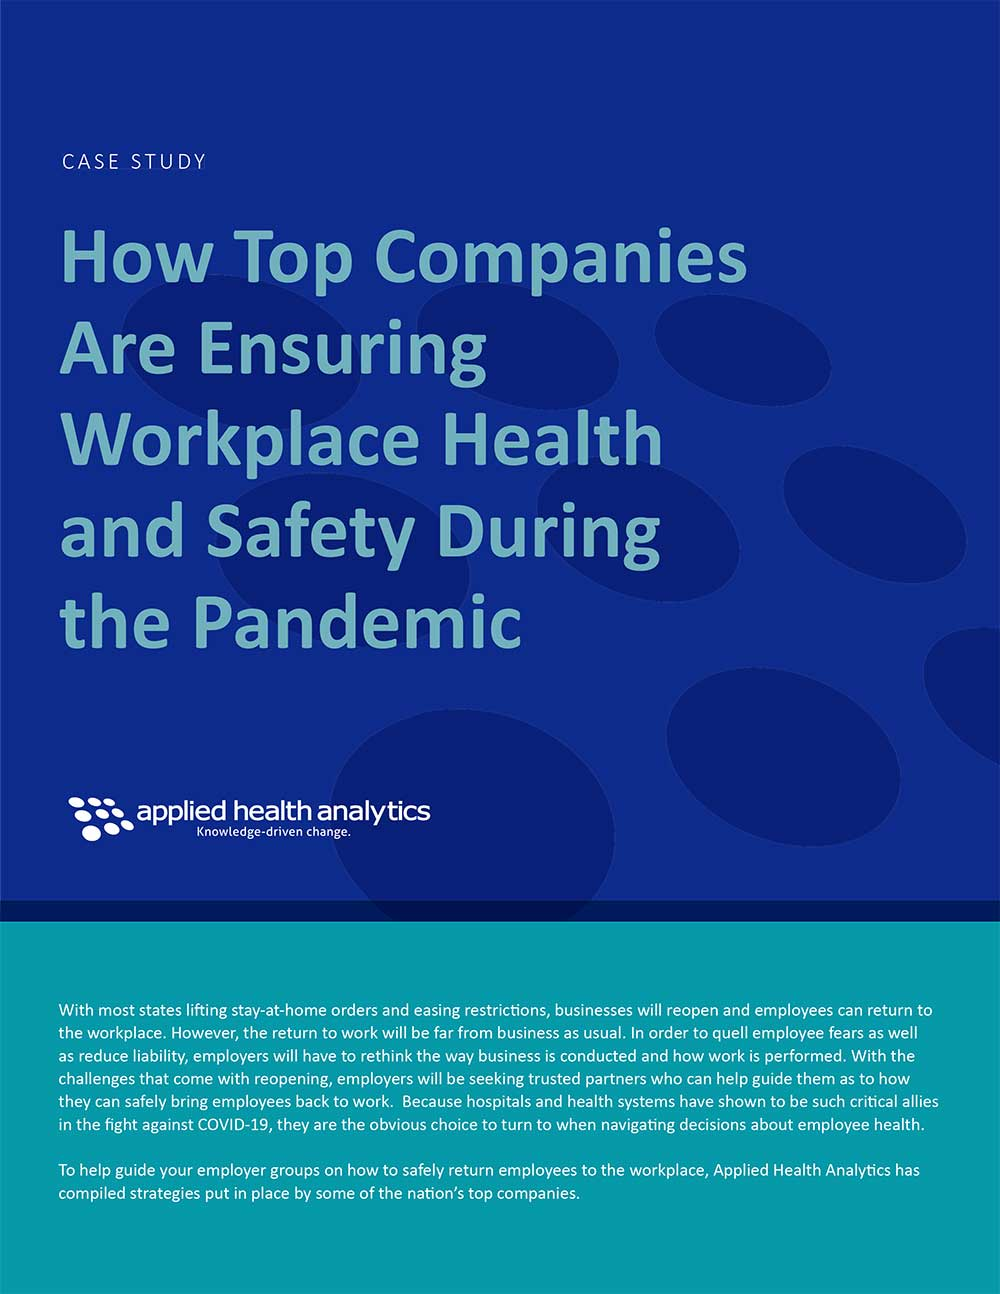 Applied Health Analytics Case Study How Top Companies Are Ensuring Workplace Health and Safety During the Pandemic